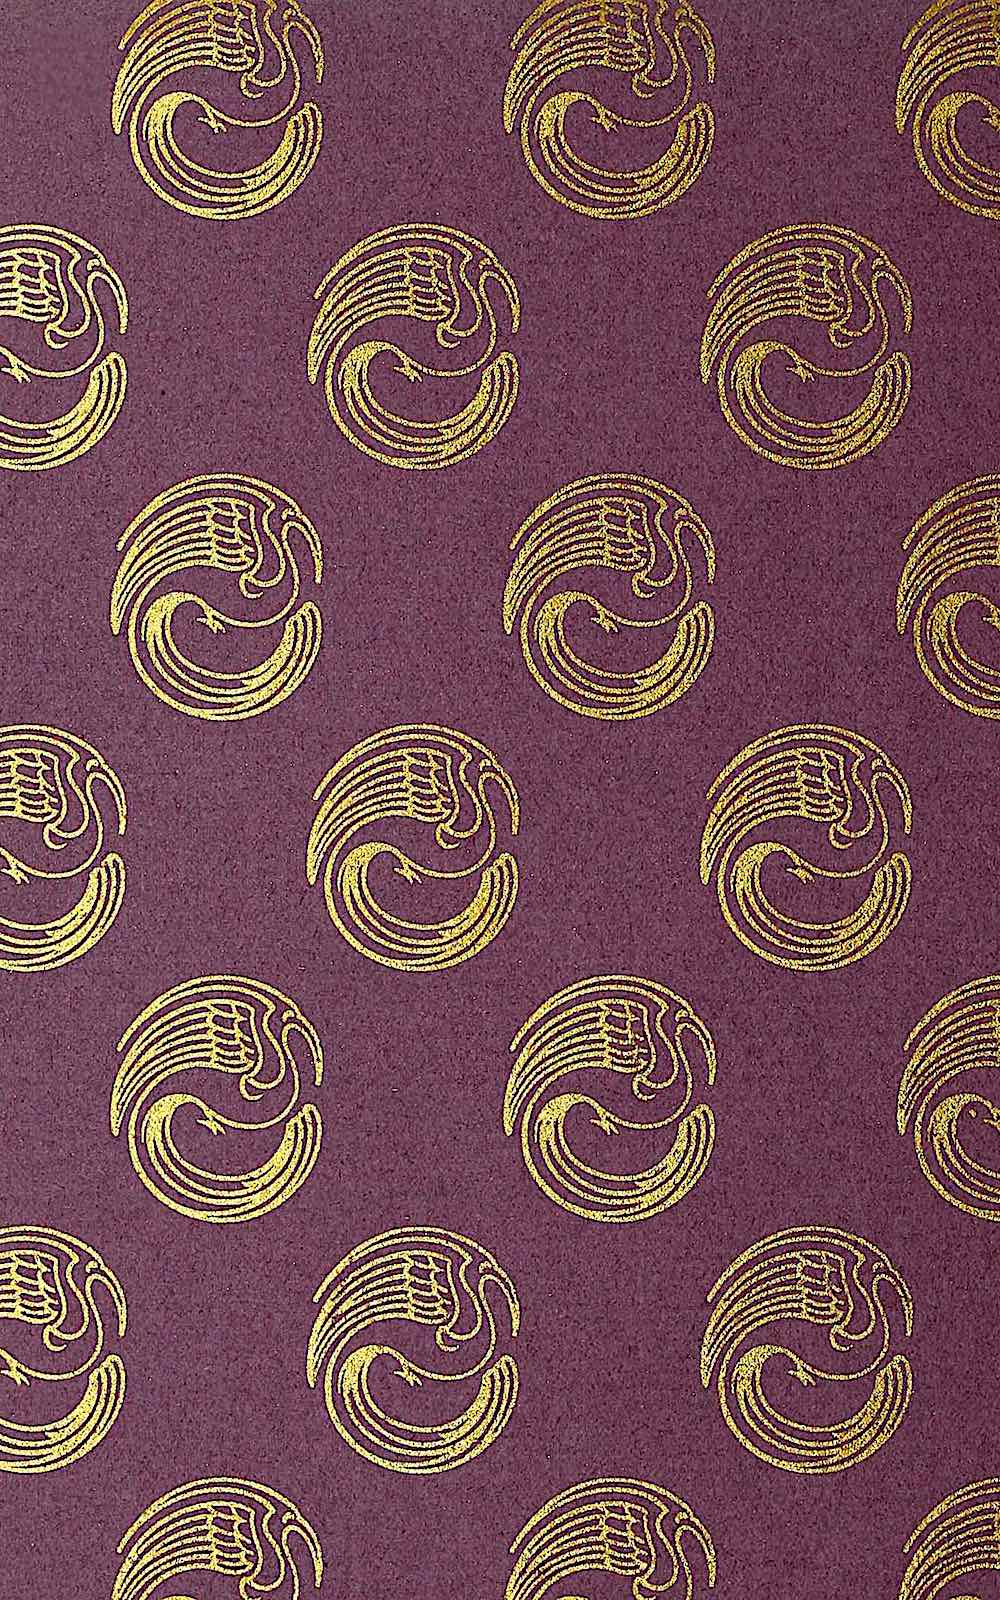 the end pages of a book 1900, a pattern of gold birds on a purple field